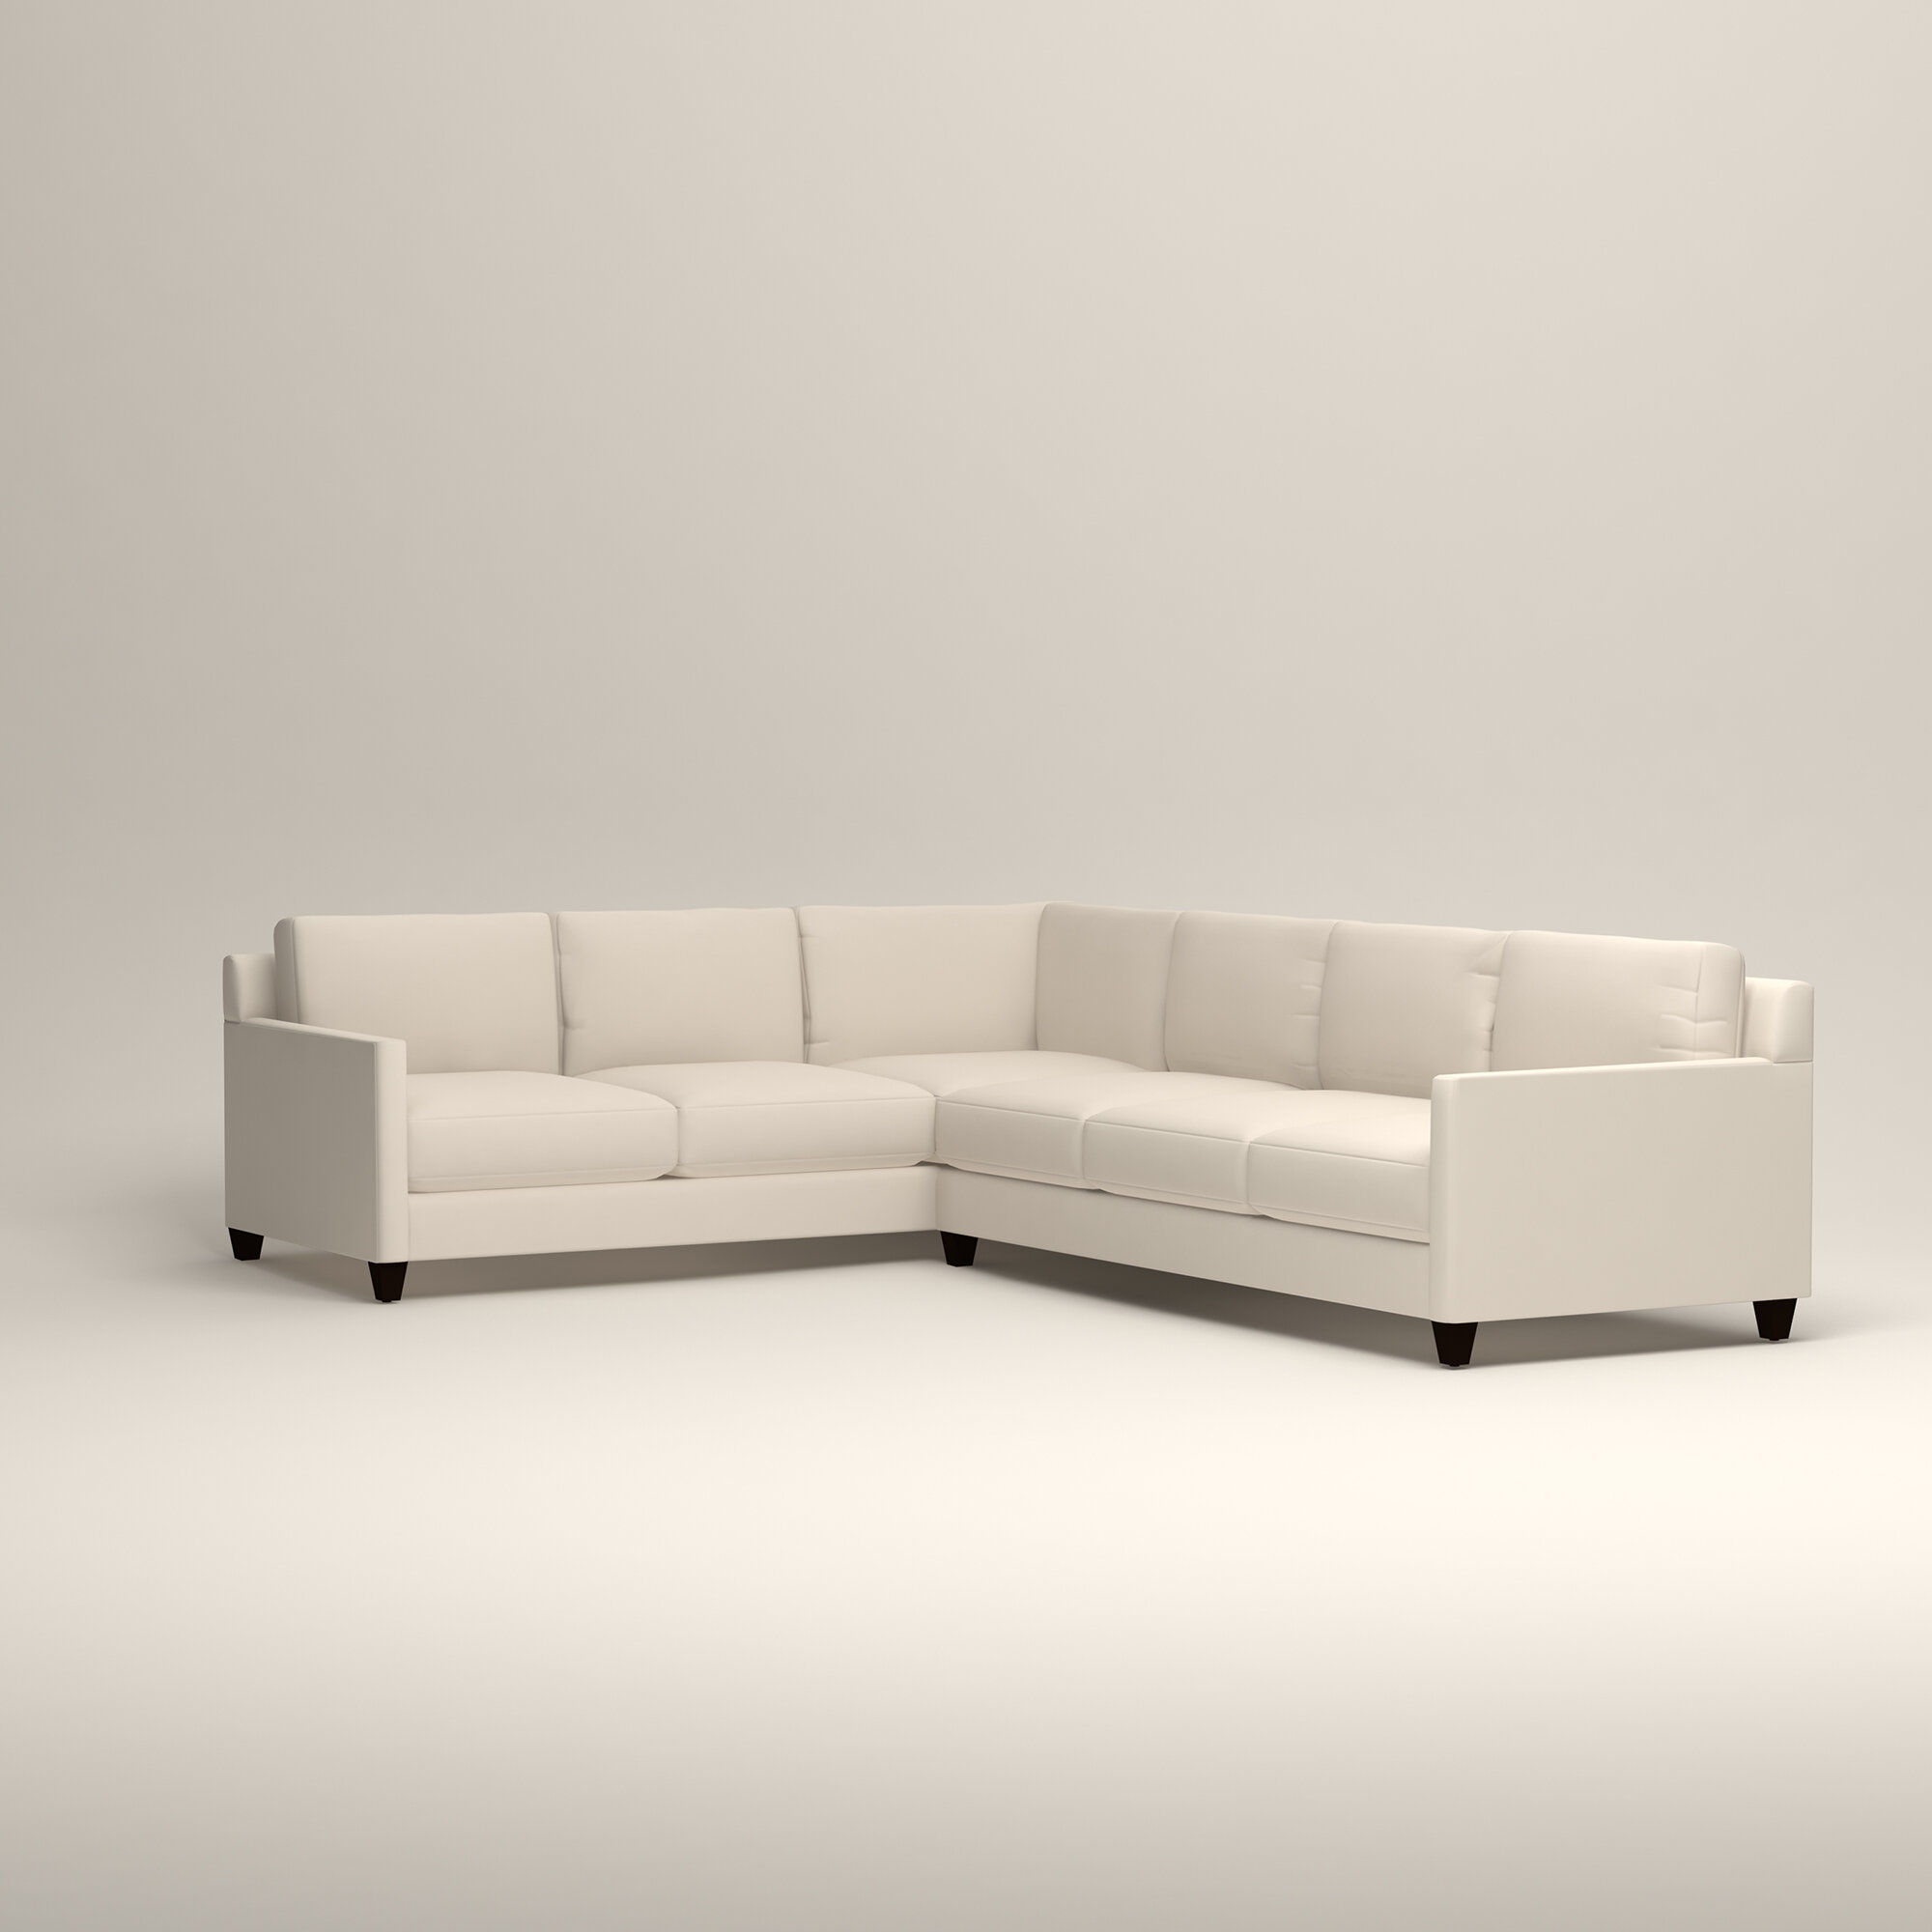 Swell Sectional Sofa Buying Guide Wayfair Bralicious Painted Fabric Chair Ideas Braliciousco